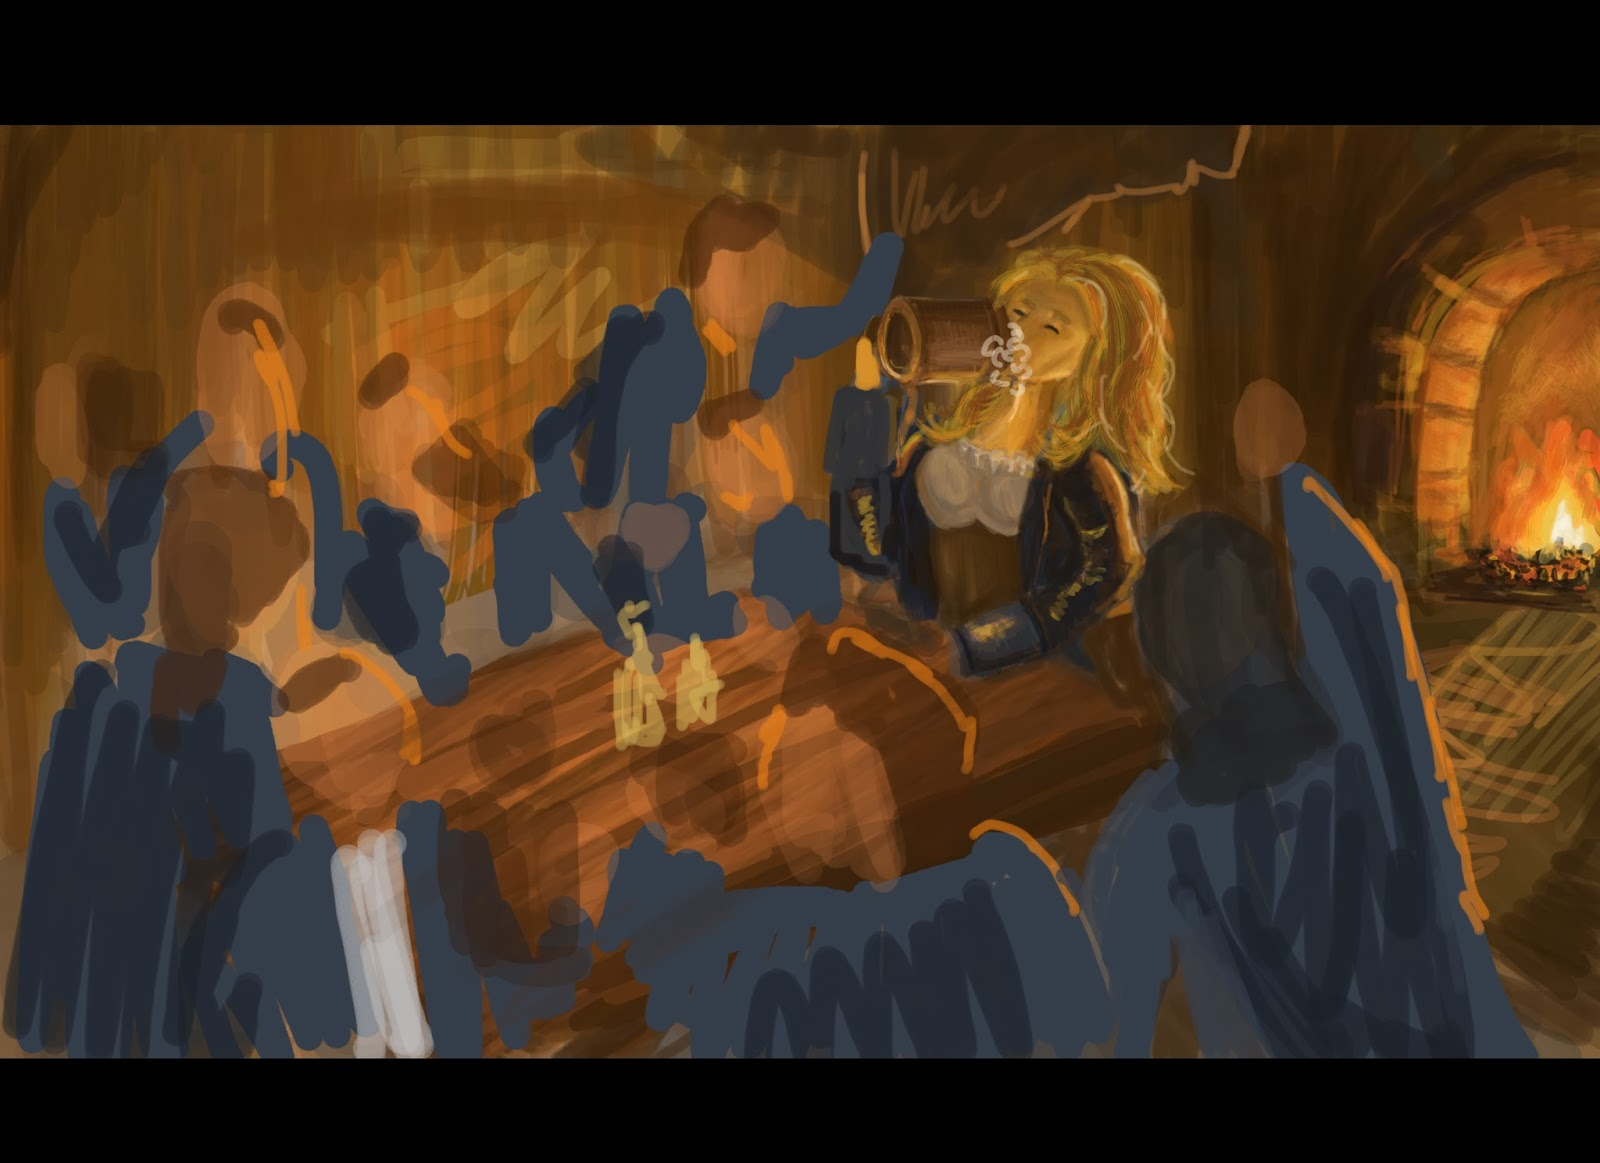 specialiststudy1 in a tavern